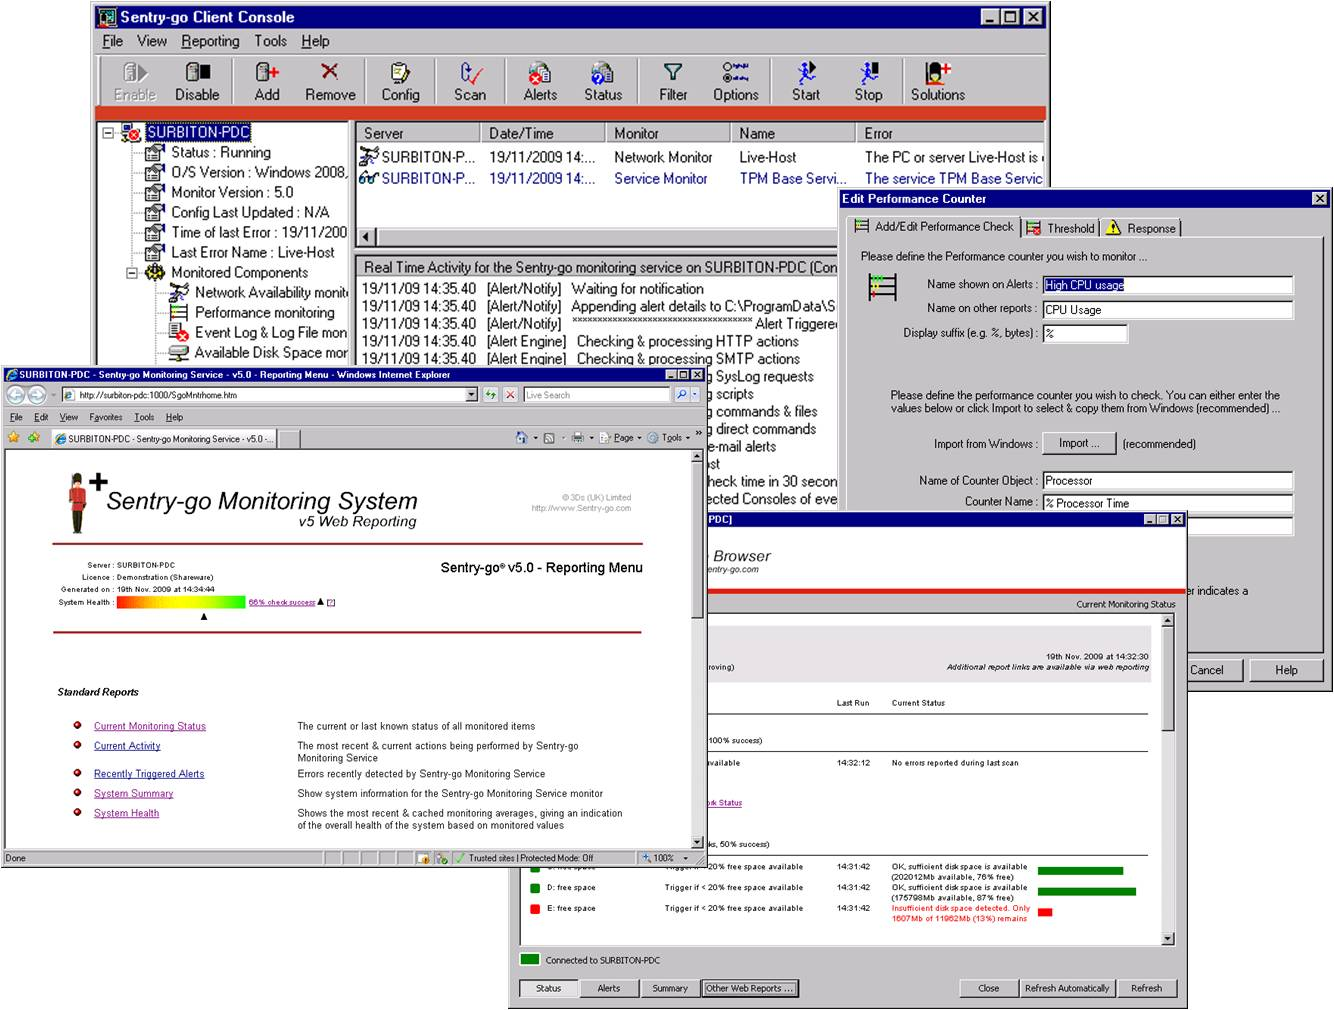 Sentry-go Quick IIS Web Monitor 6.32 full